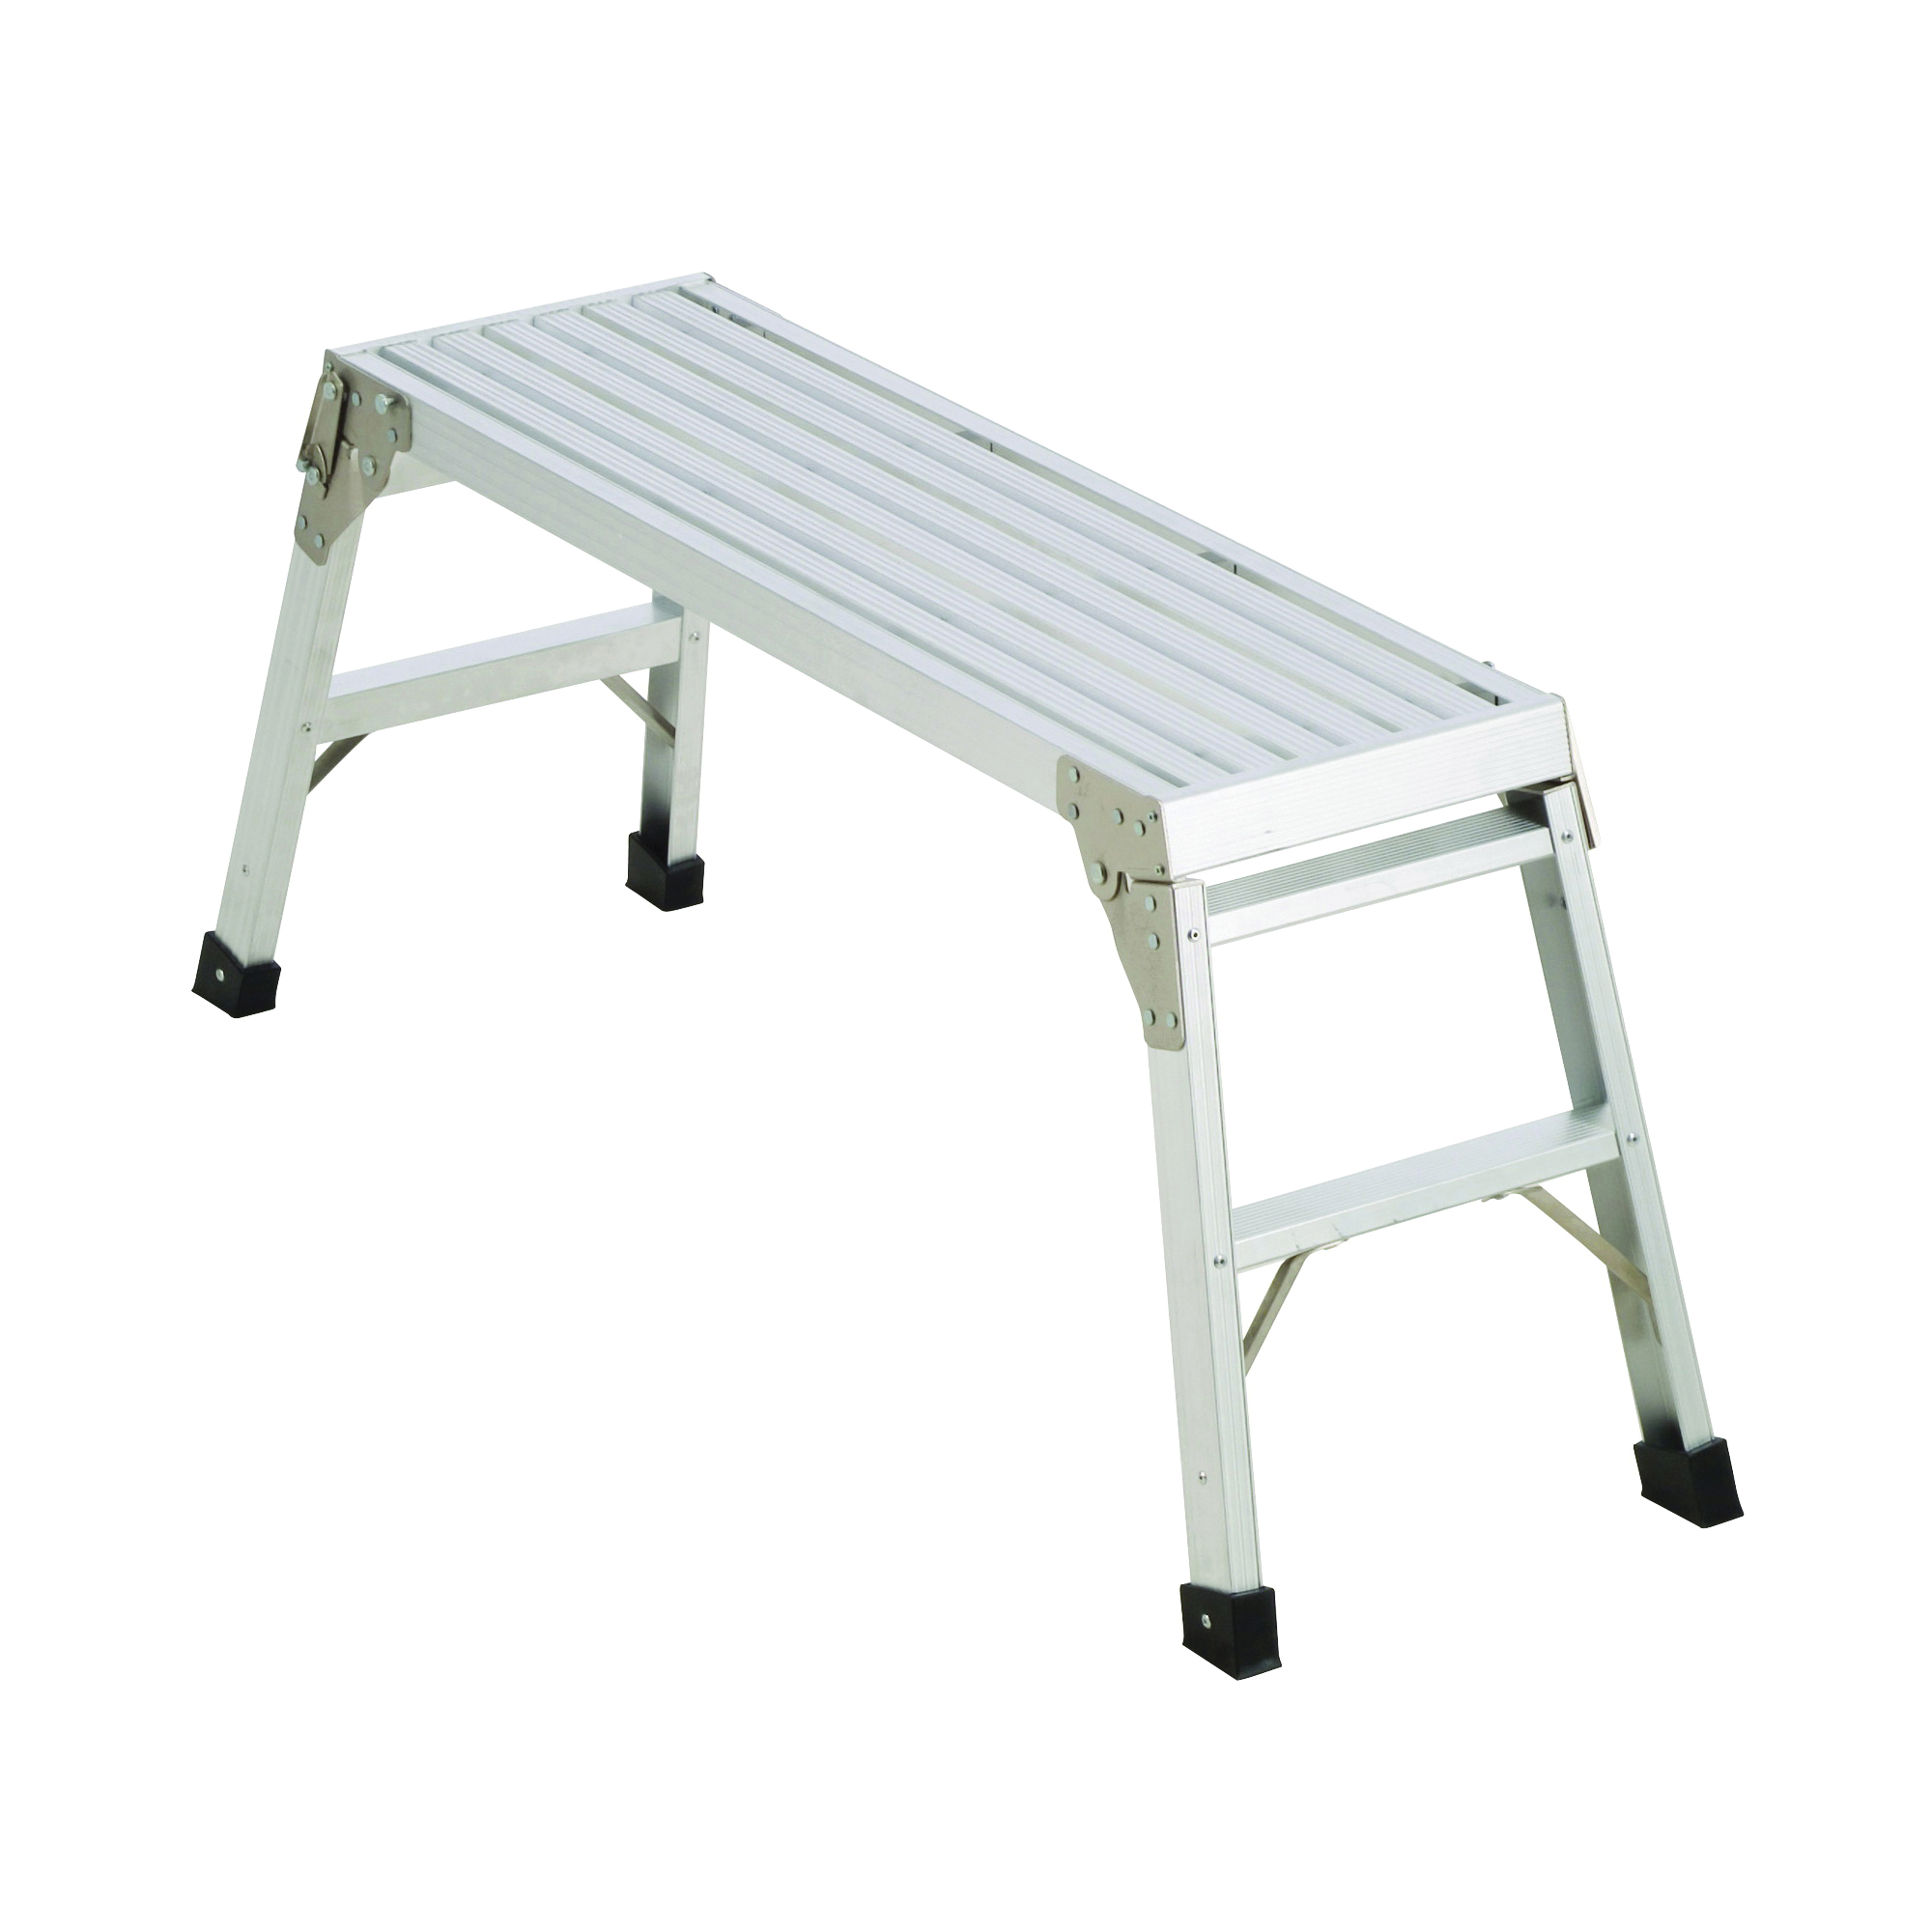 Picture of WERNER AP-20-MP6 Platform Work, 12 in L, 39-1/2 in W, Aluminum, Silver